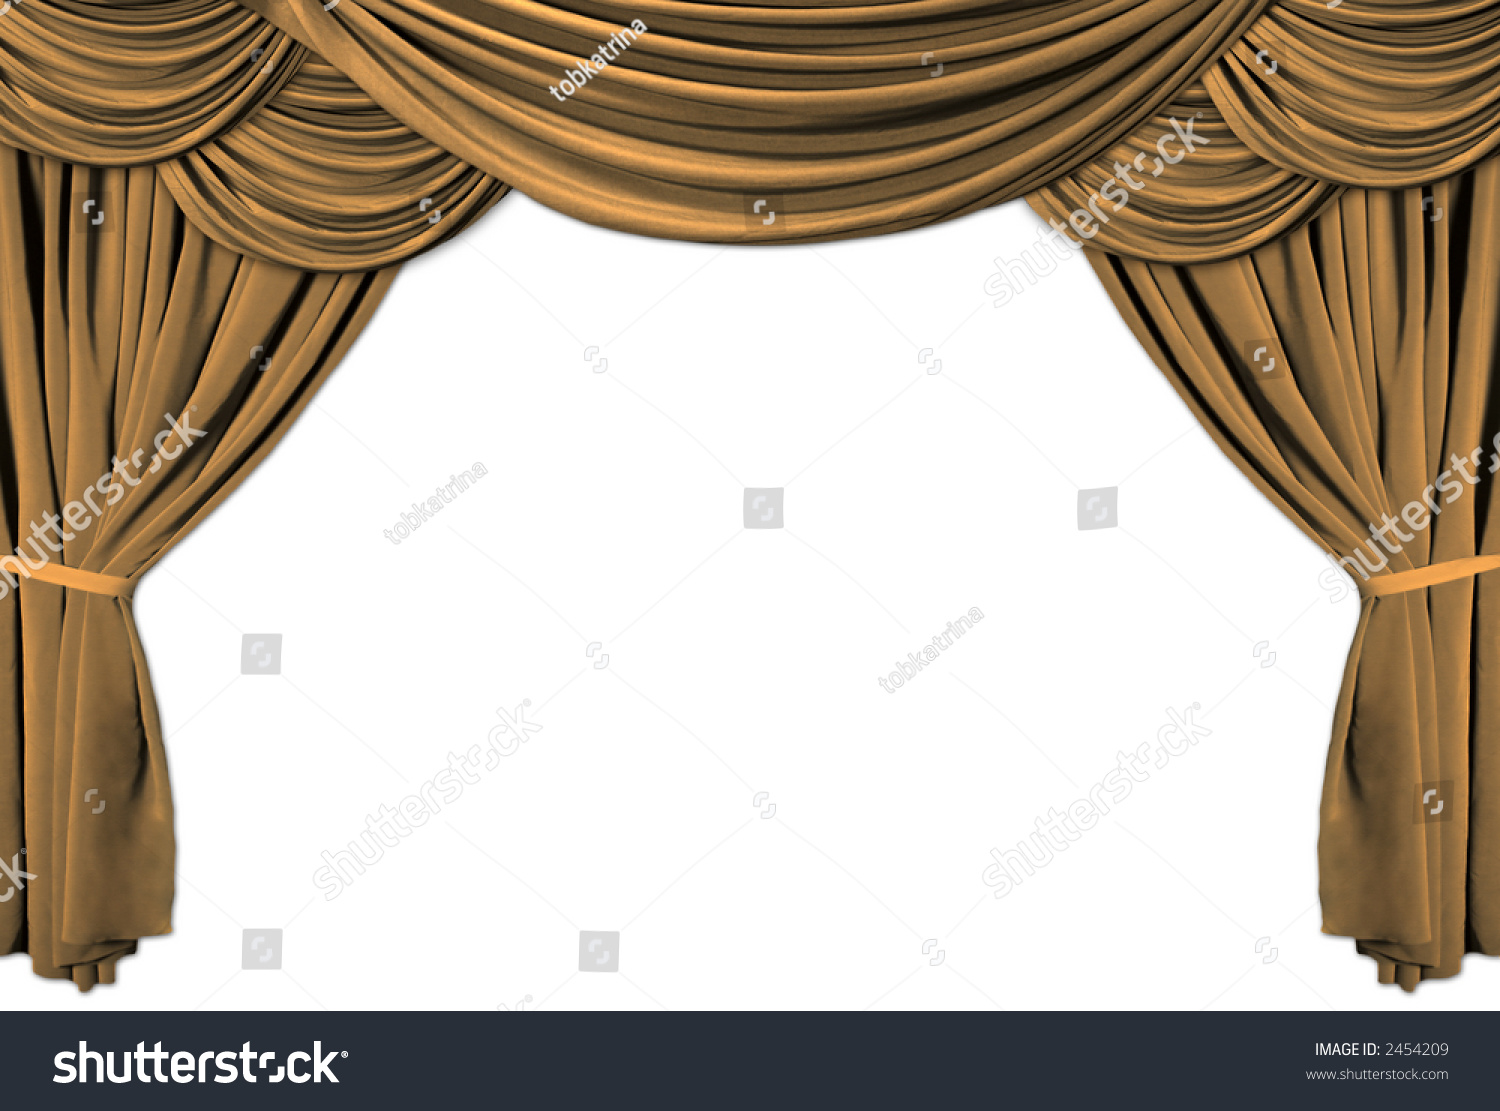 Stock photo dramatic red old fashioned elegant theater stage stock - Old Fashioned Elegant Theater Stage With Gold Velvet Curtains